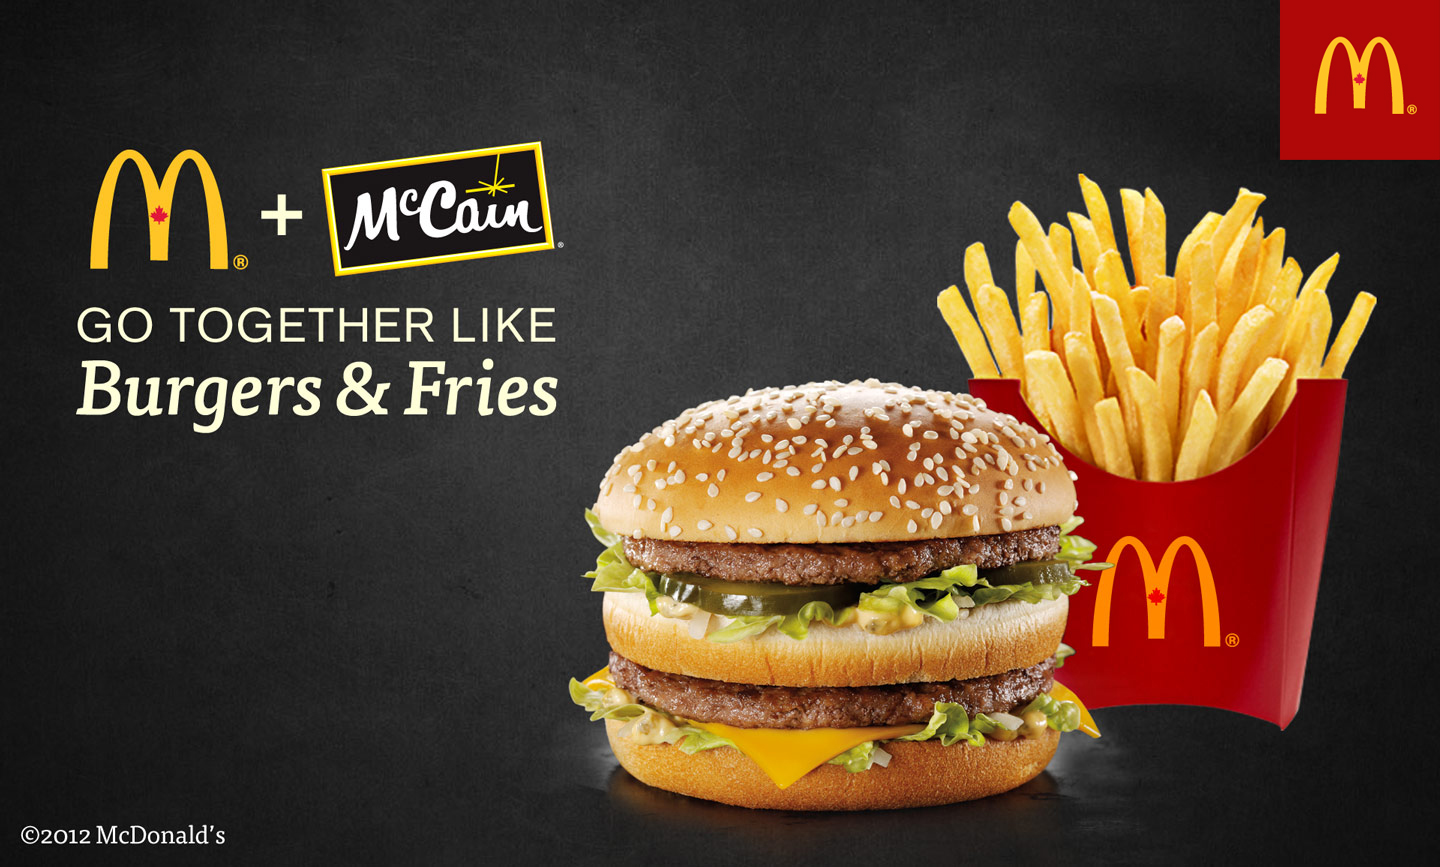 is it true that you fries are from McCain?